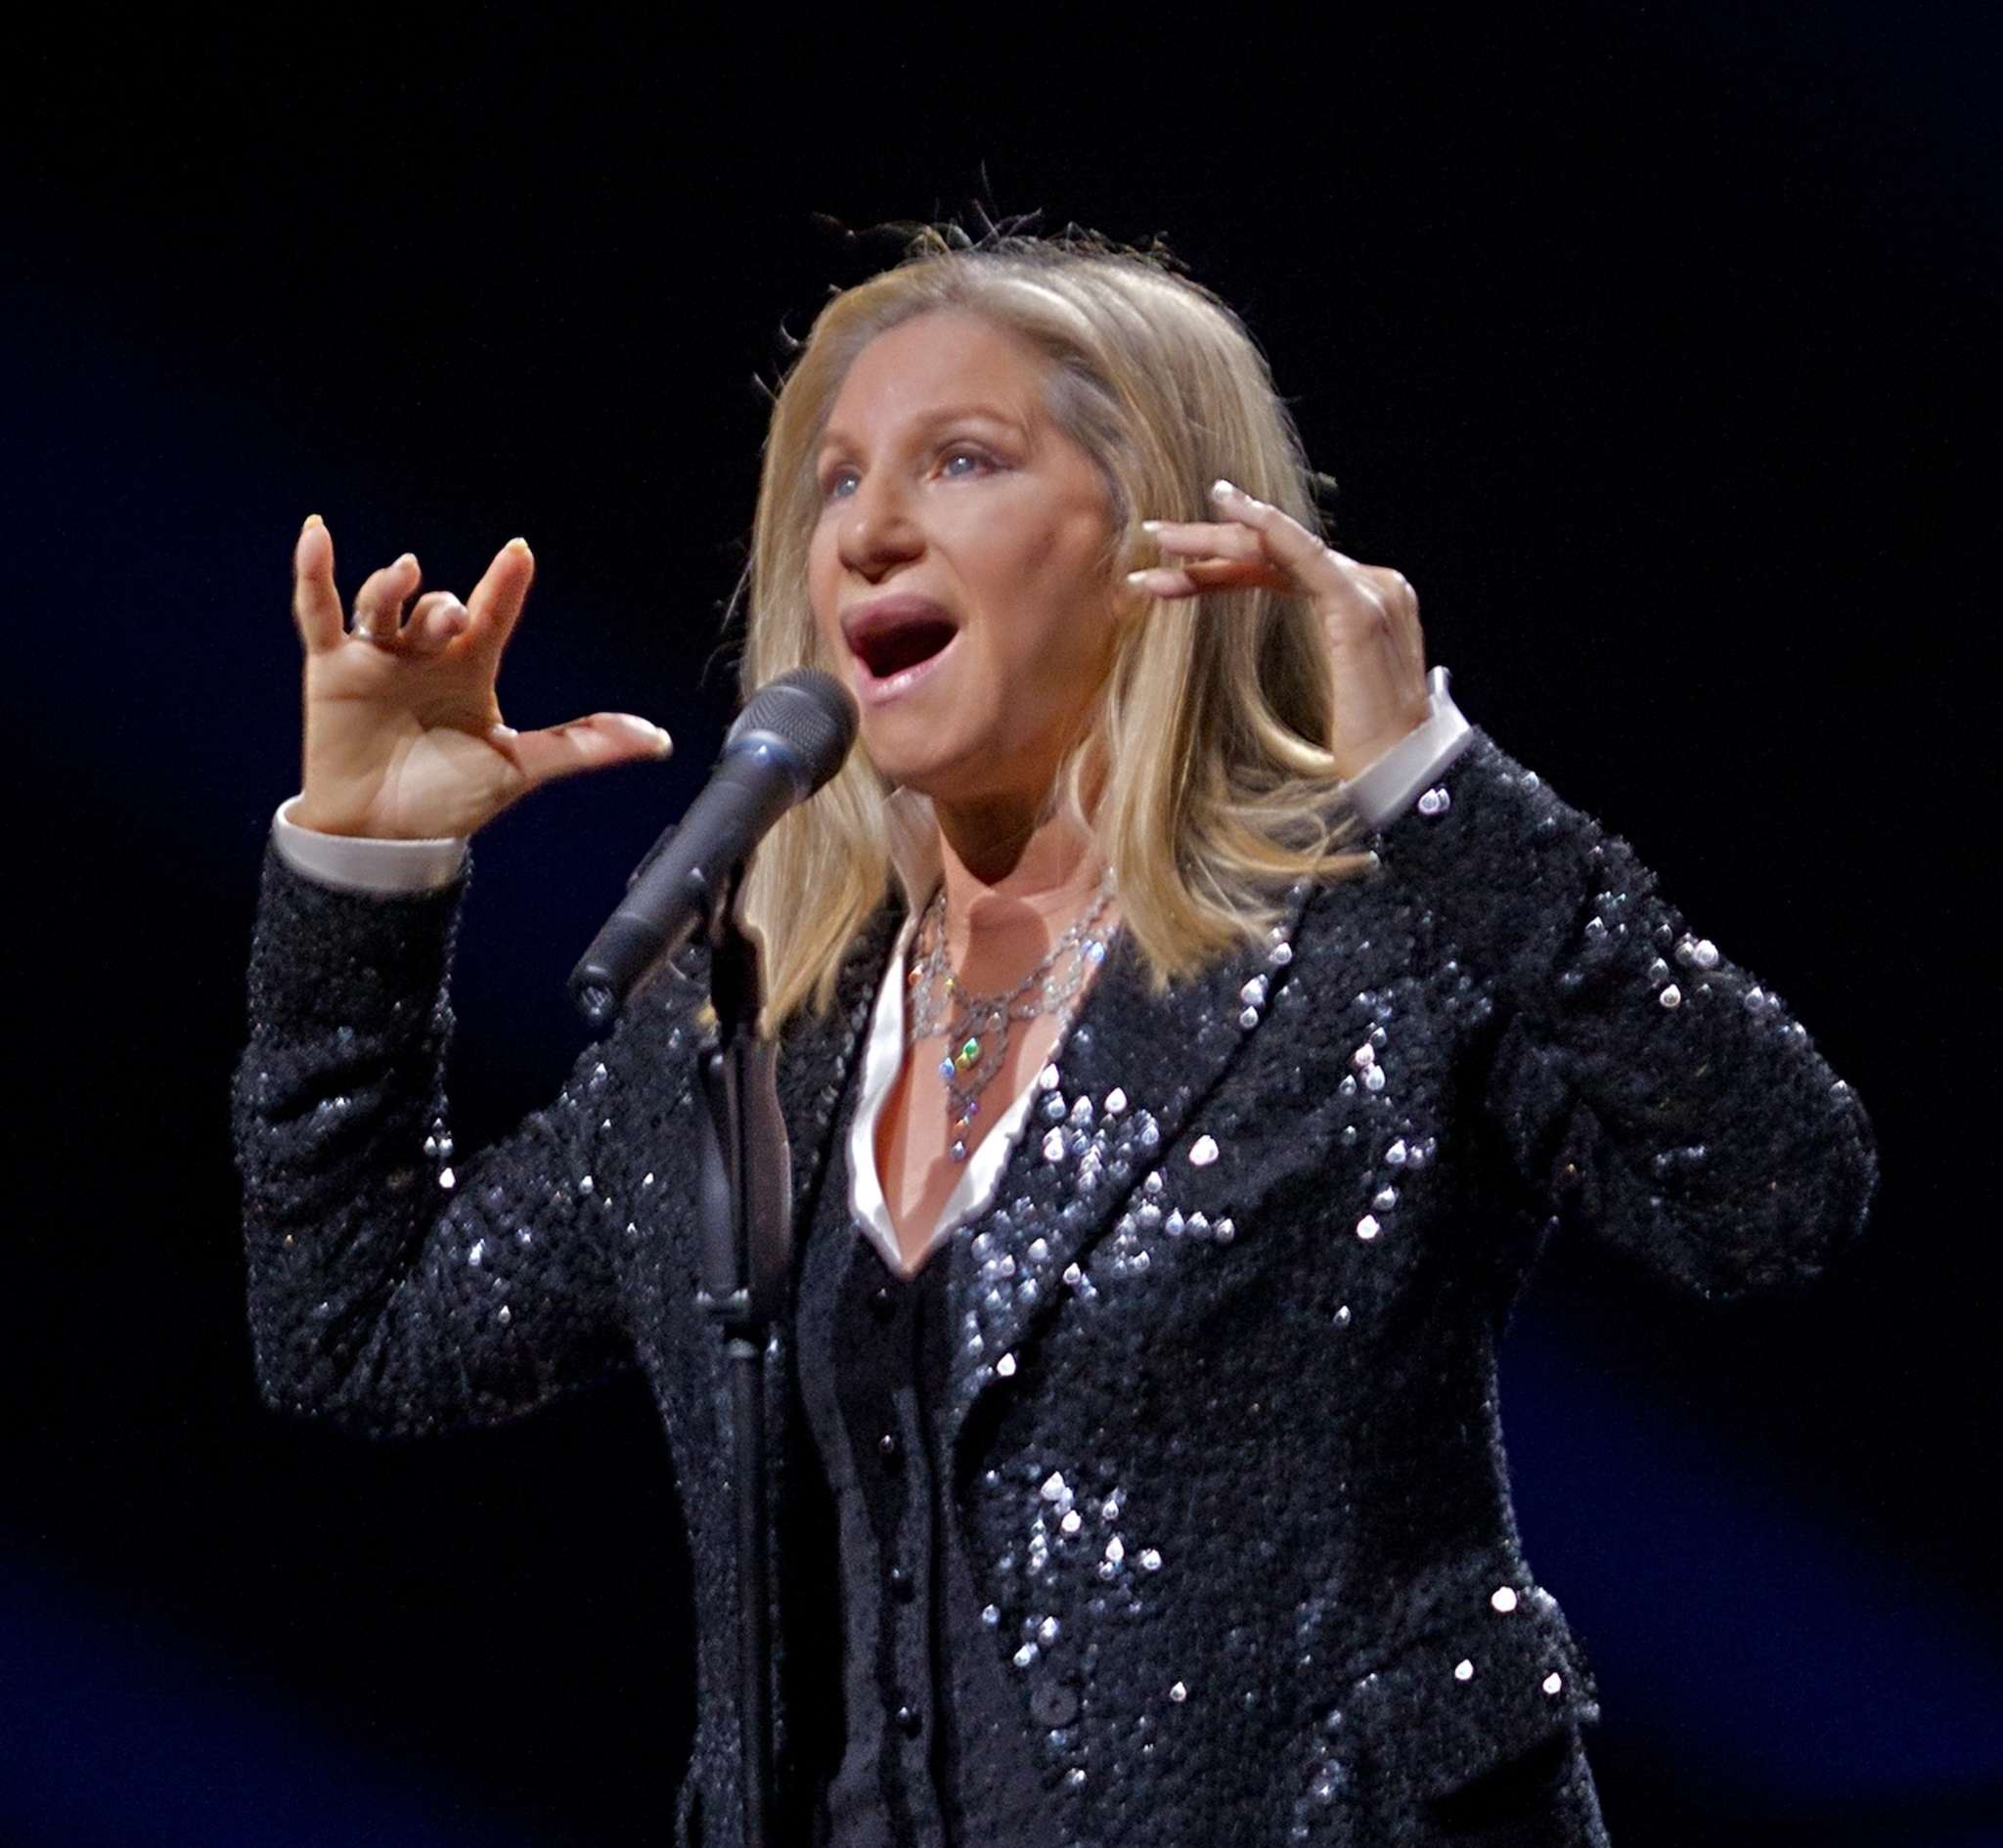 Barbra Streisand performing in 2012 at the Wells Fargo Center - where she´ll be Saturday on her new tour.